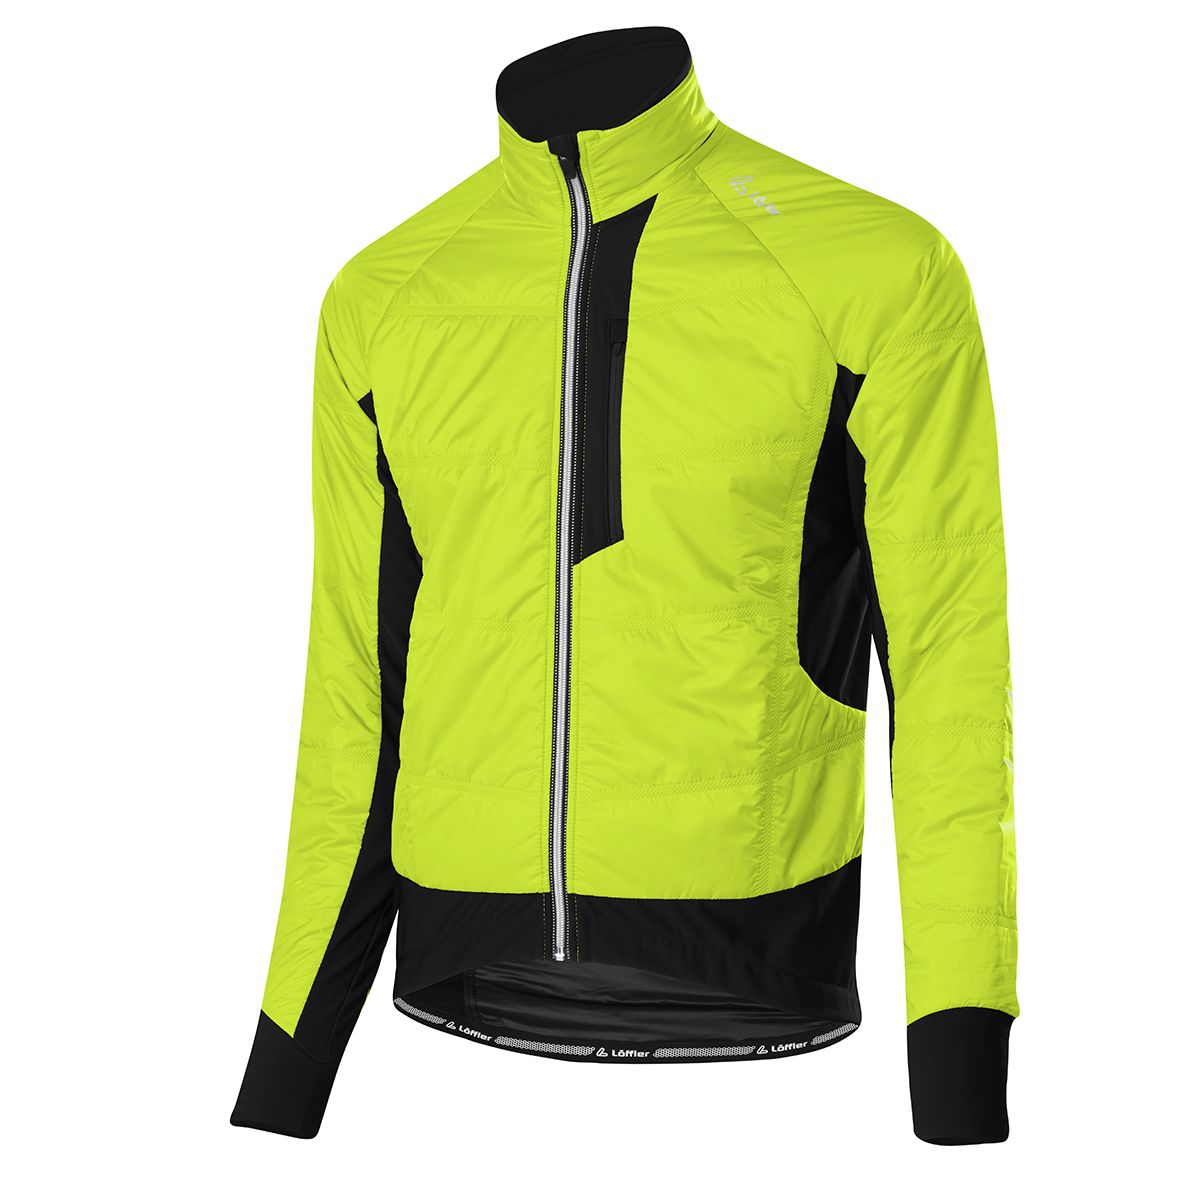 PRIMALOFT MIX winter jacket